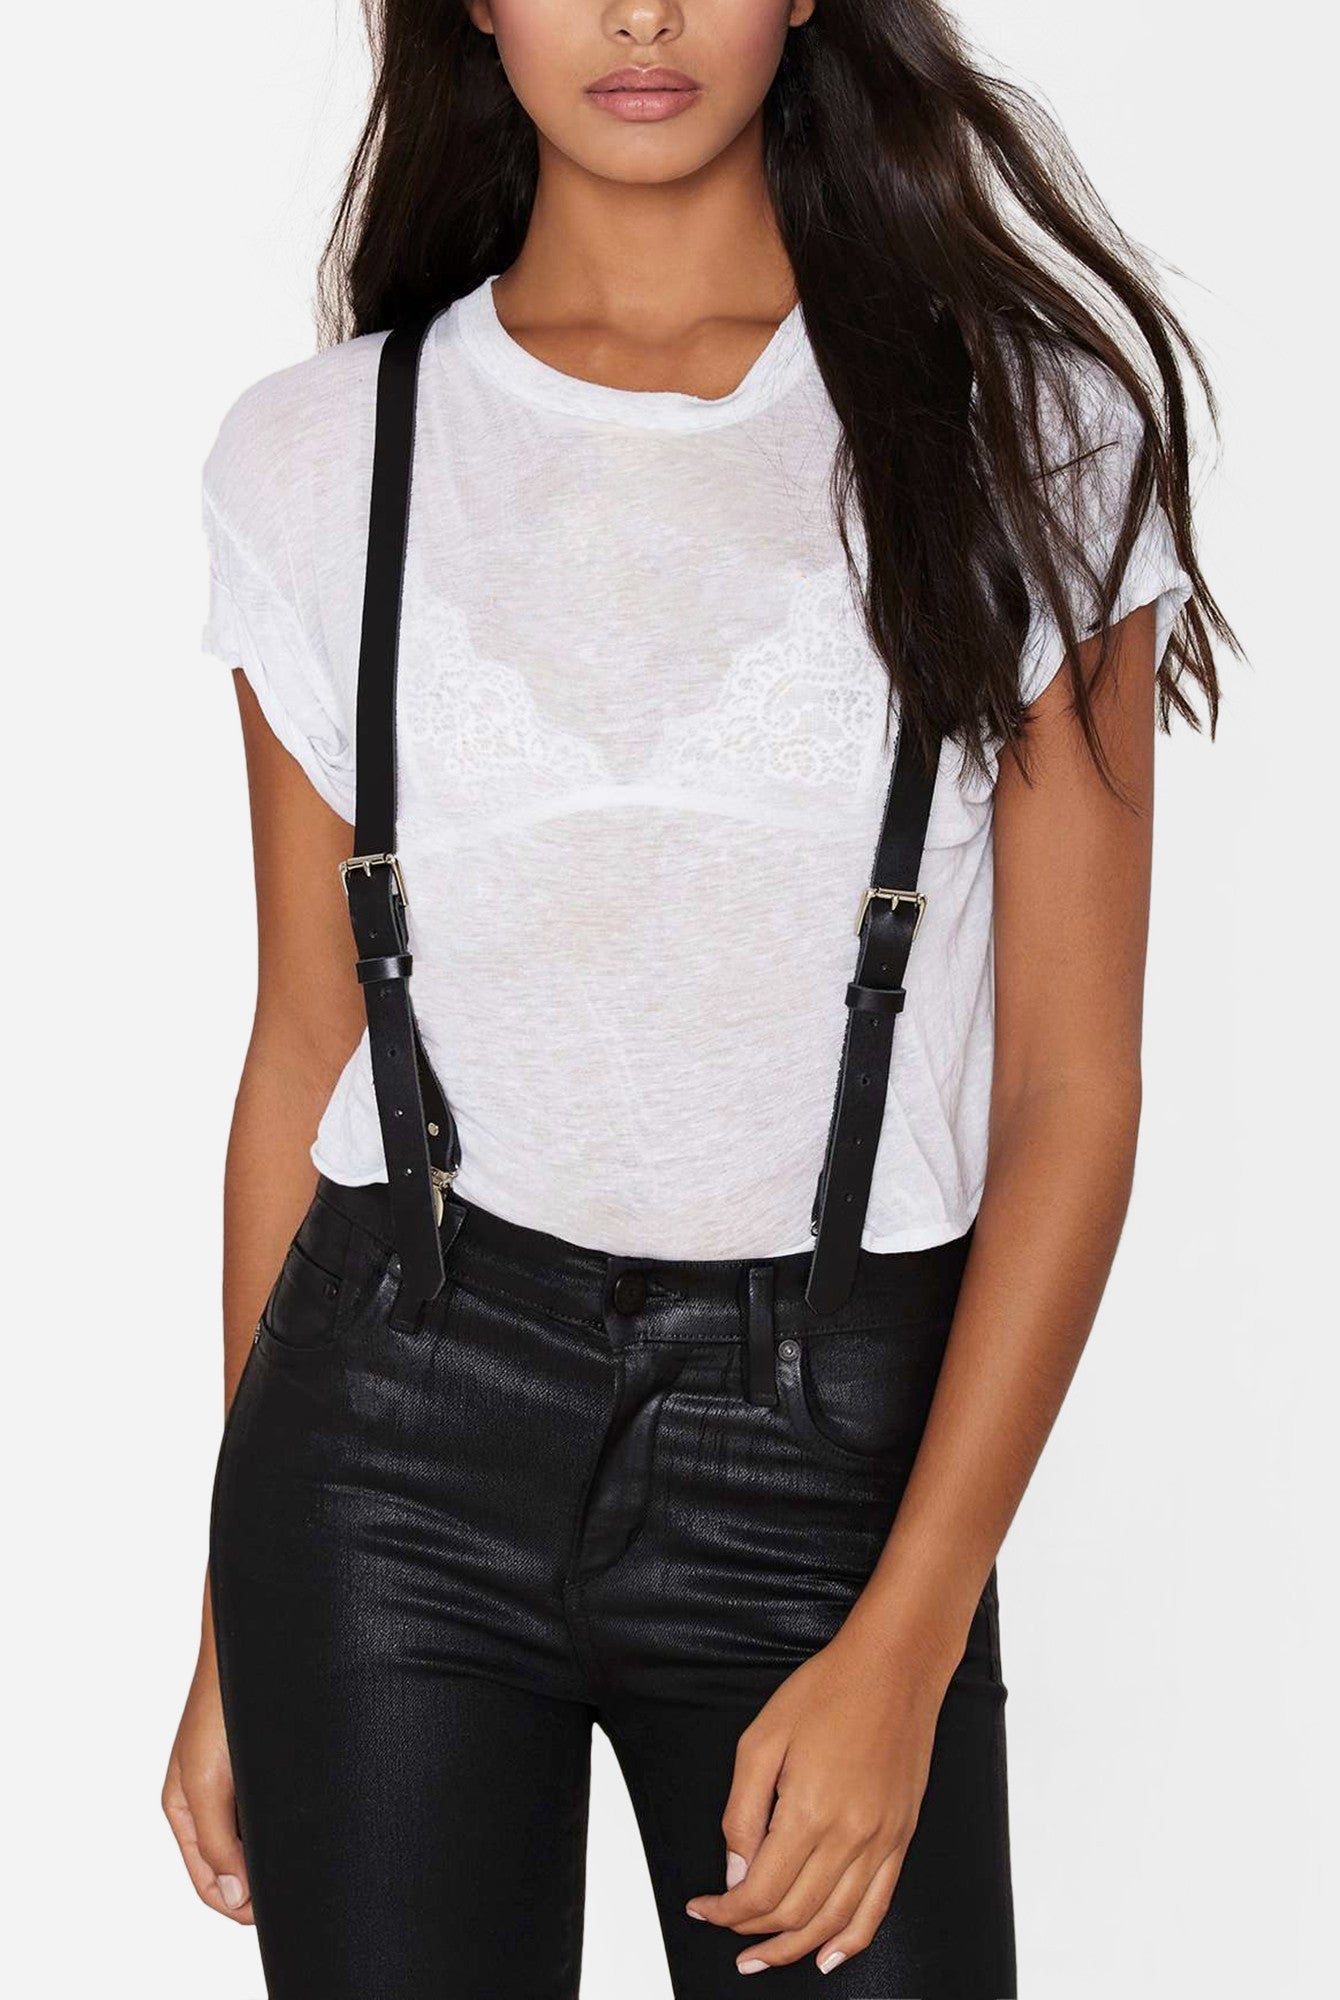 84fee20e5 Leather Suspenders for Women by JAKIMAC